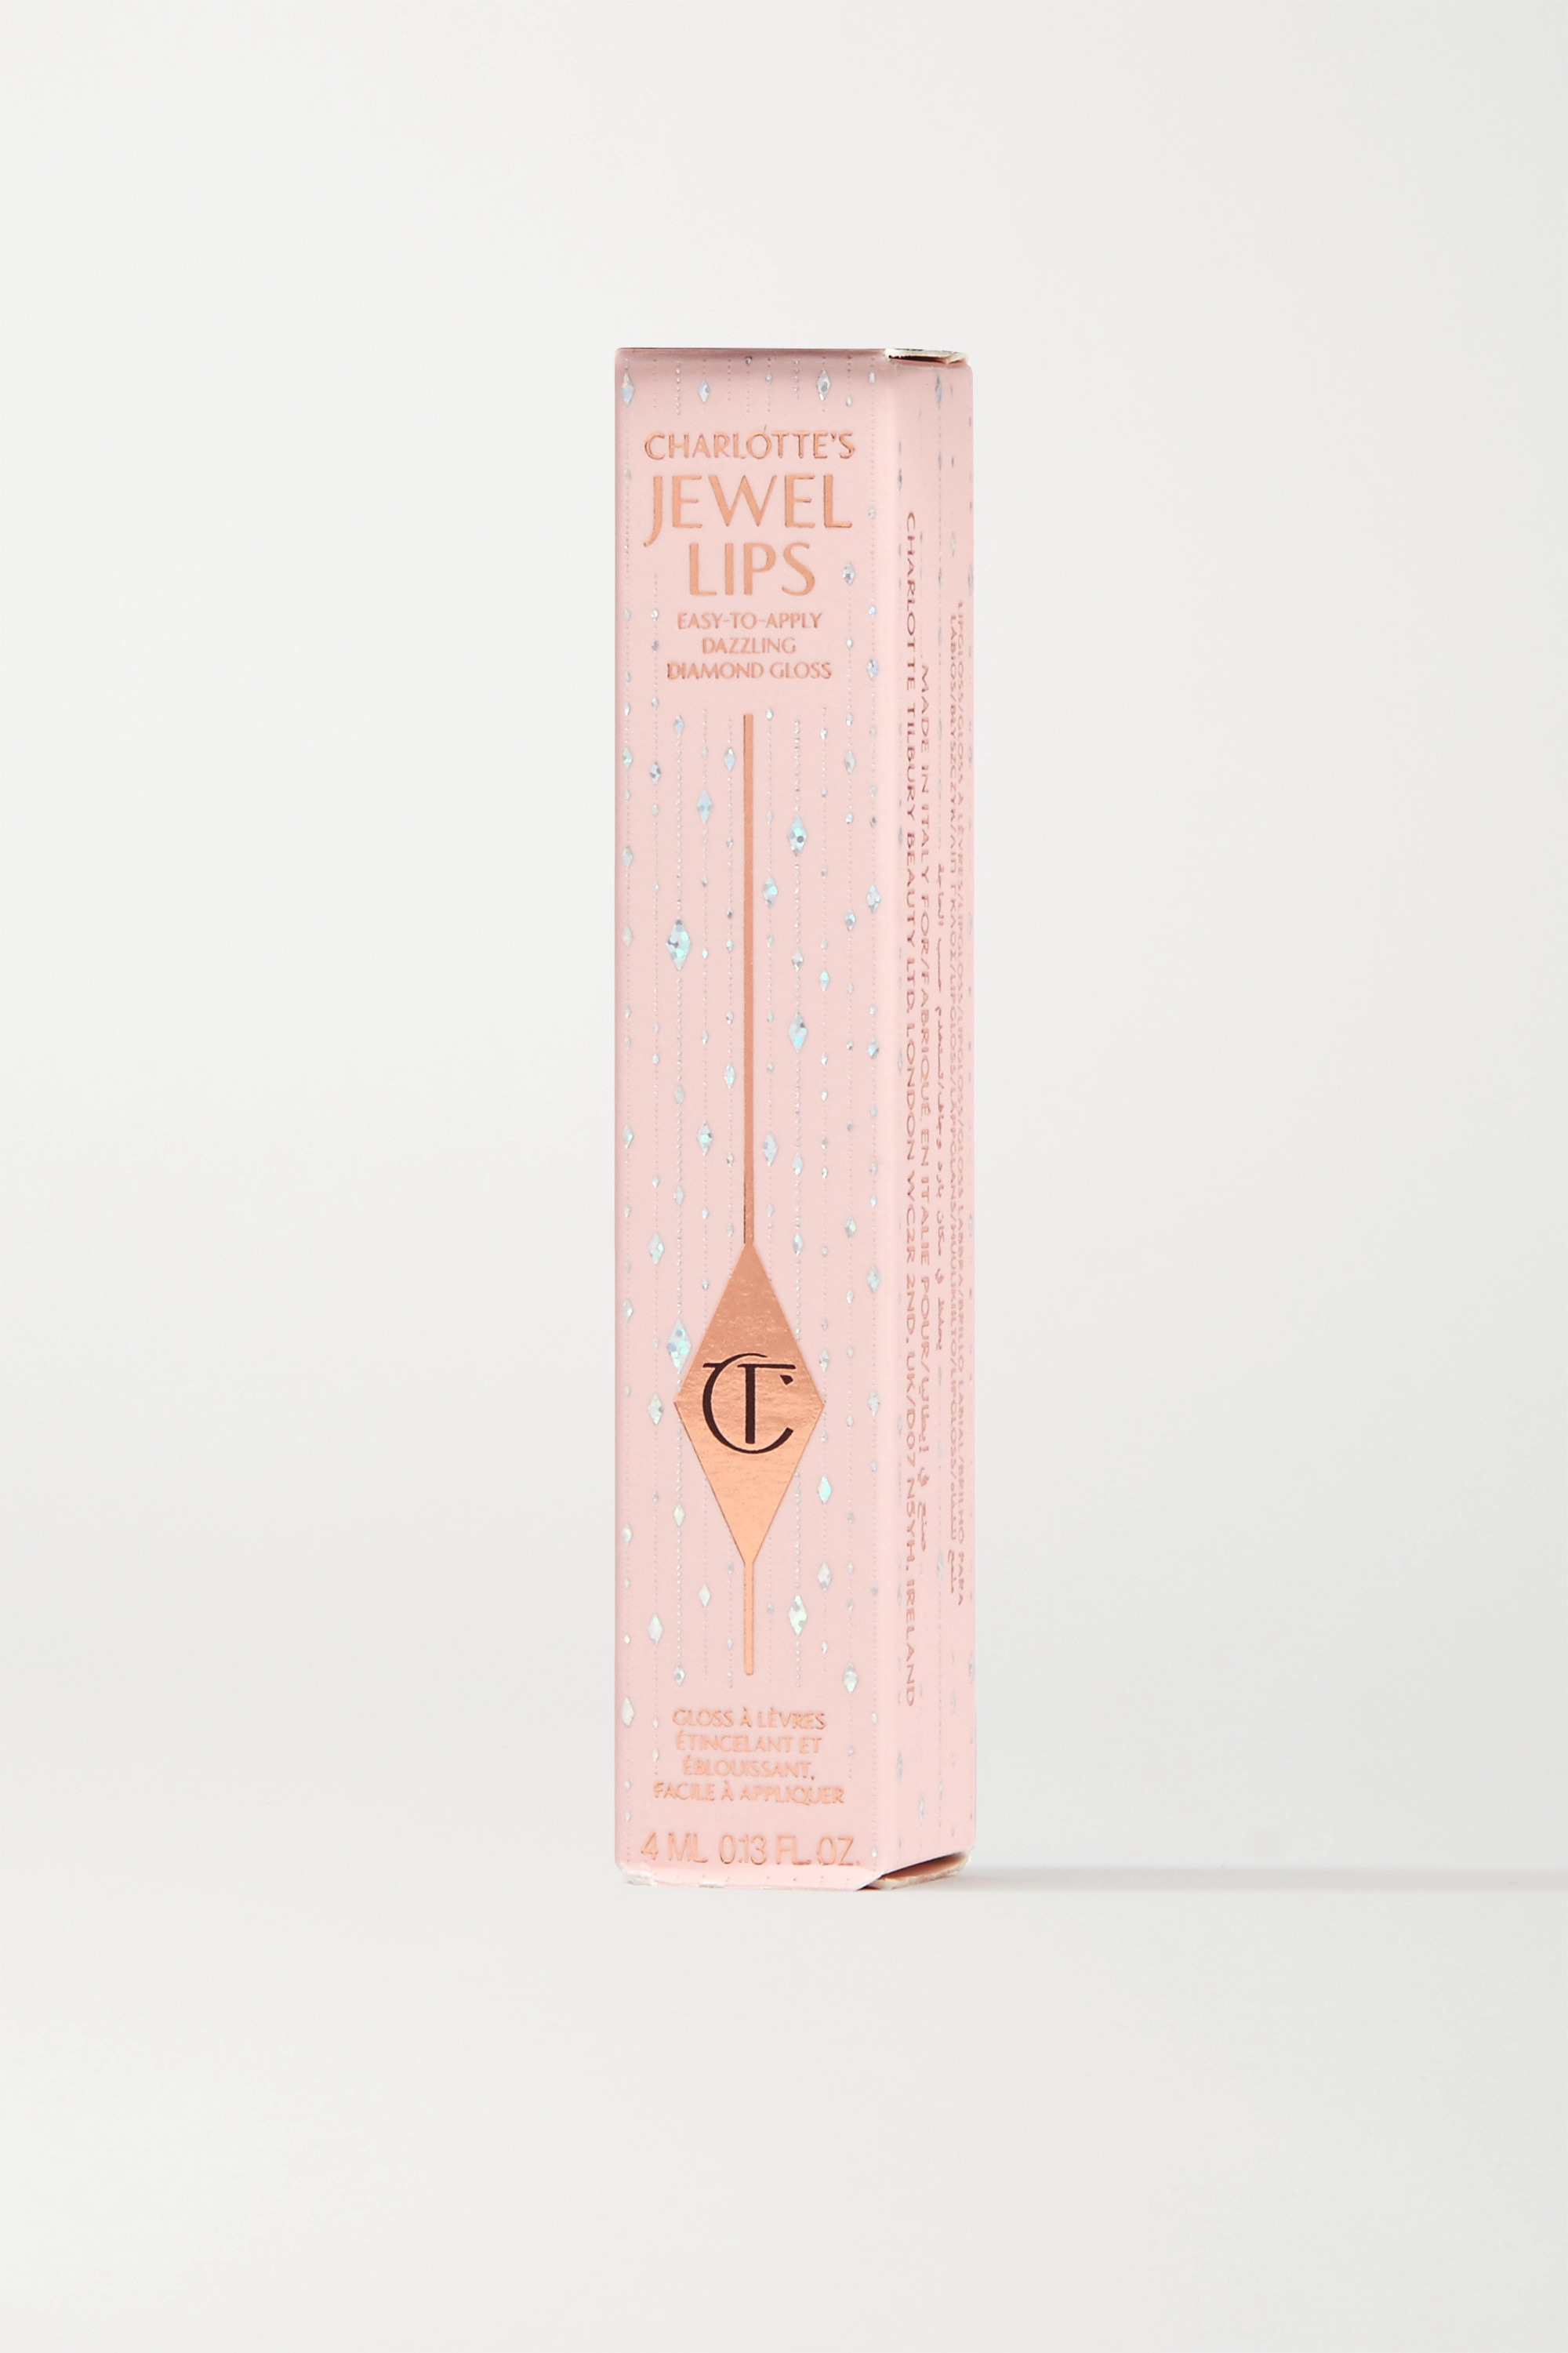 Charlotte Tilbury Charlotte's Jewel Lips Gloss - Pillow Talk